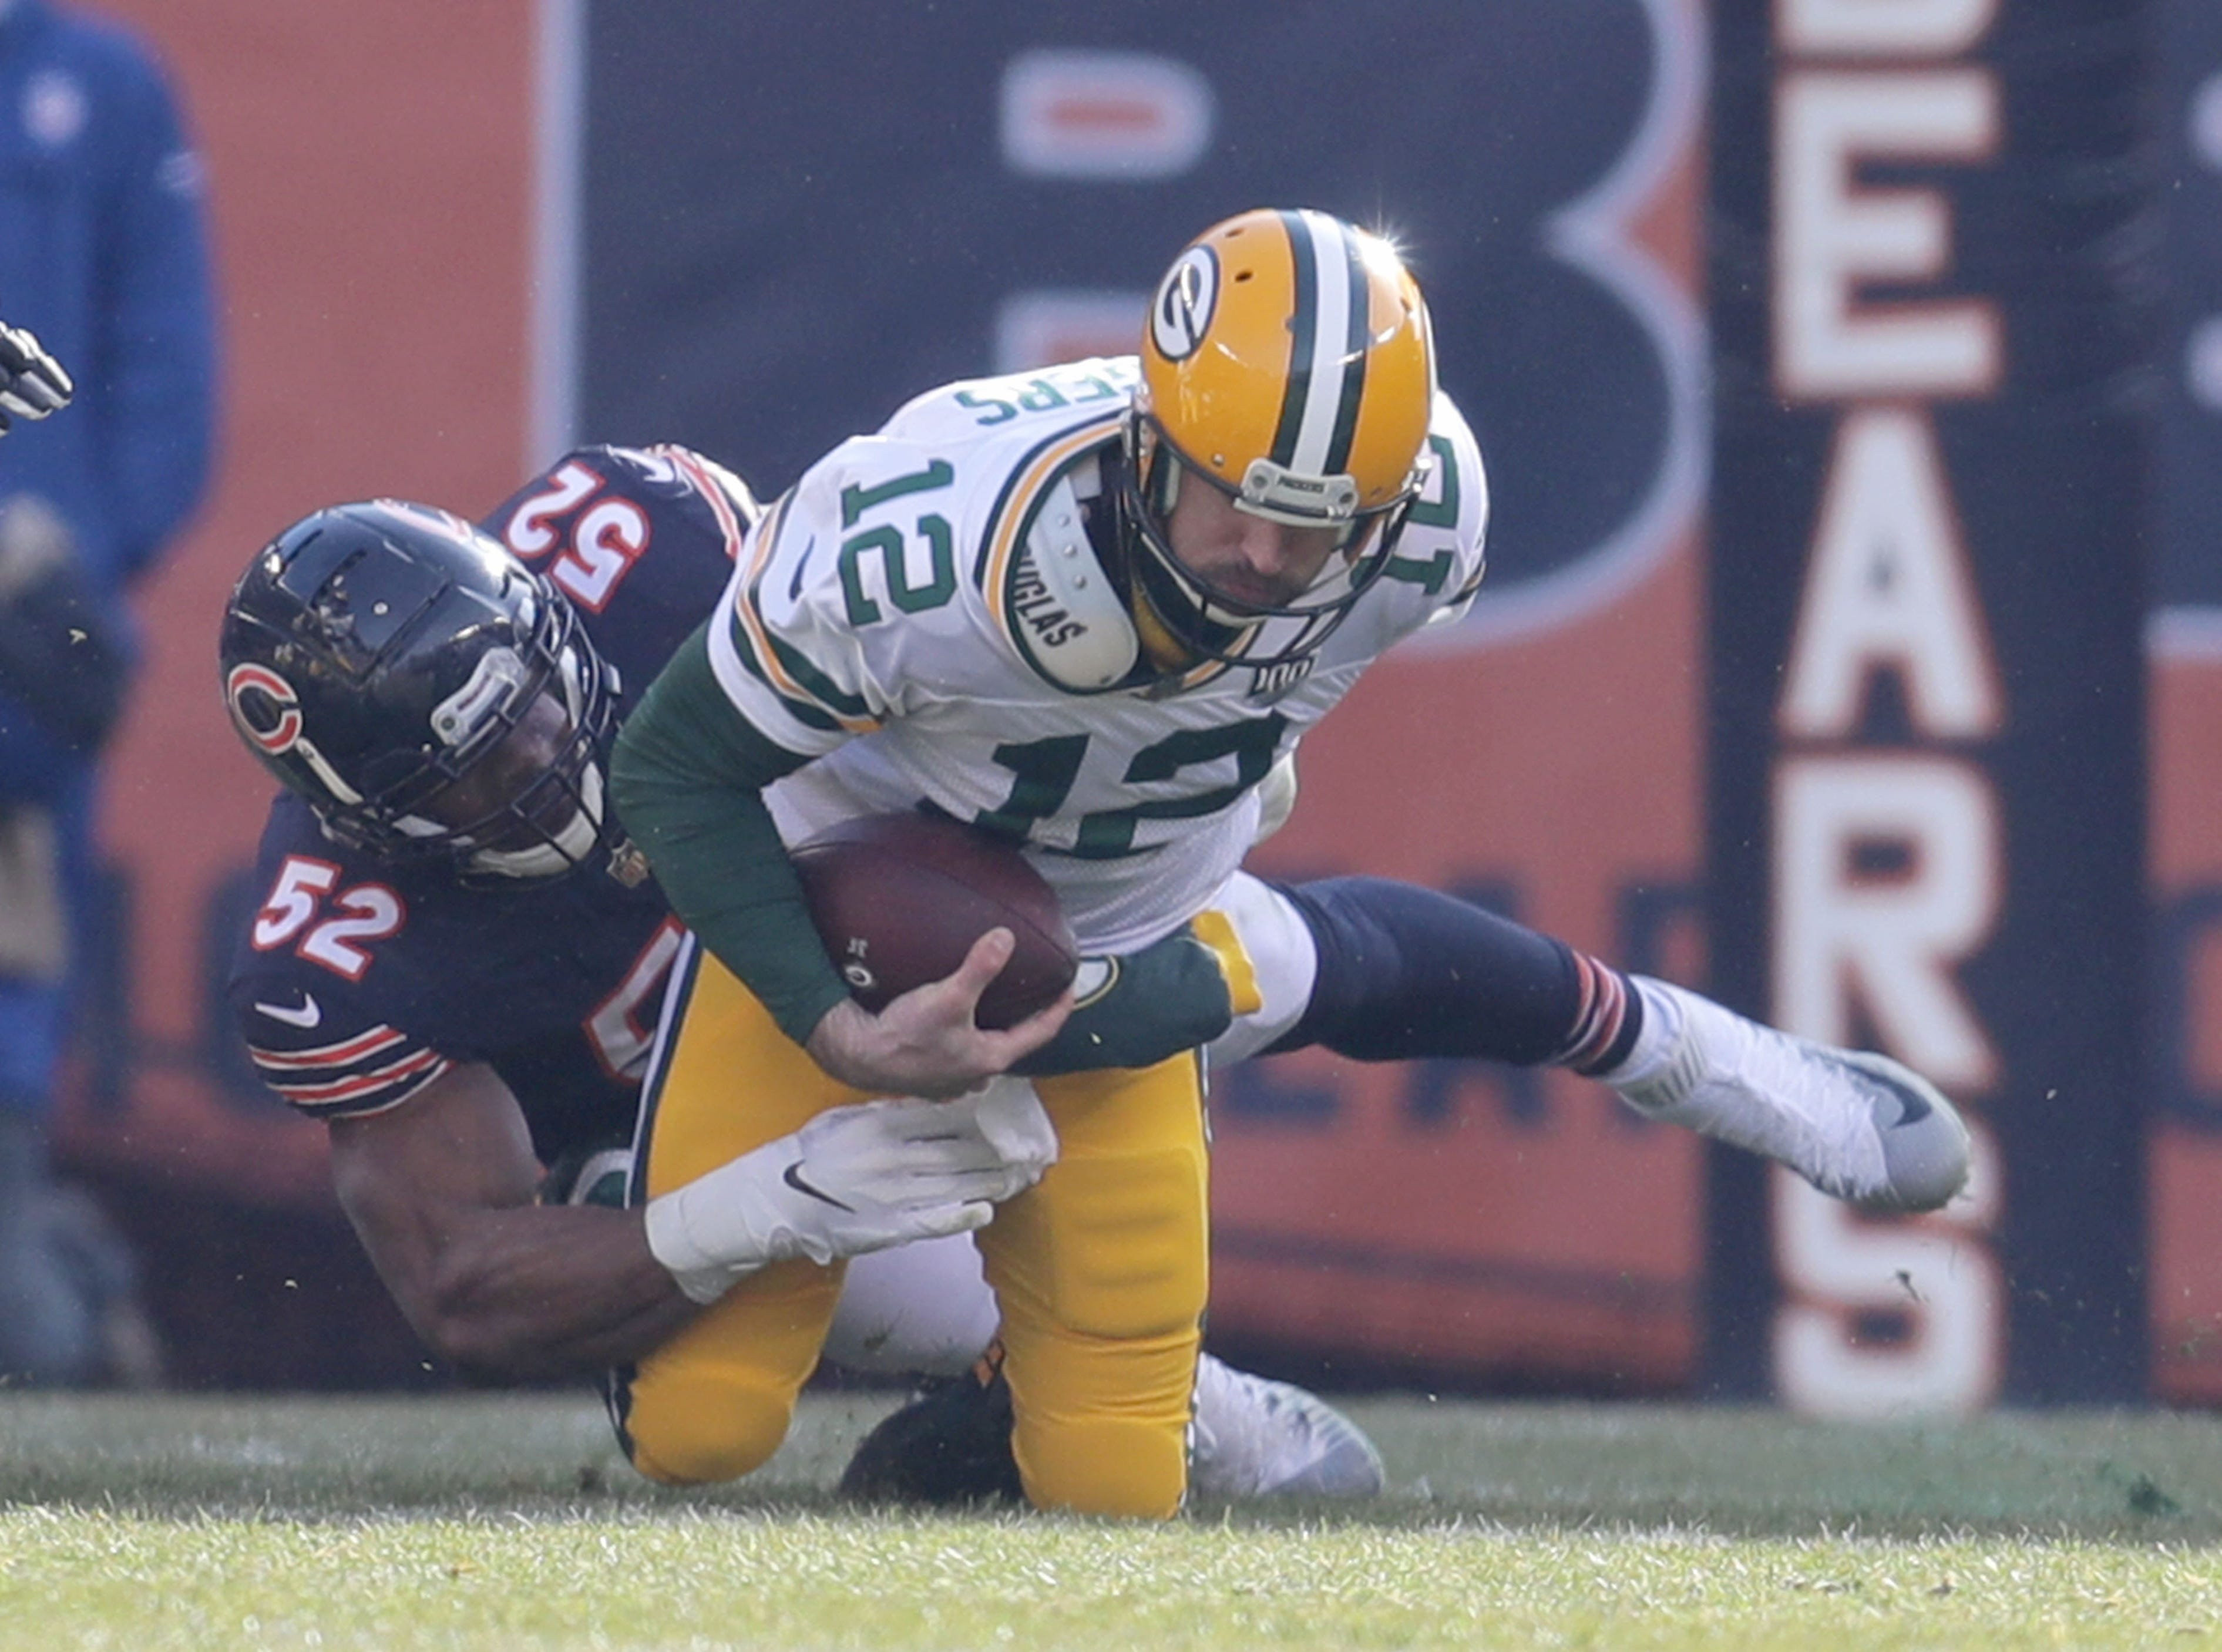 Green Bay Packers' Aaron Rodgers is sacked by Chicago Bears' Khalil Mack during the 1st half of the Green Bay Packers game against the Chicago Bears at Soldier Field Sunday, Dec. 16, 2018, in Chicago.